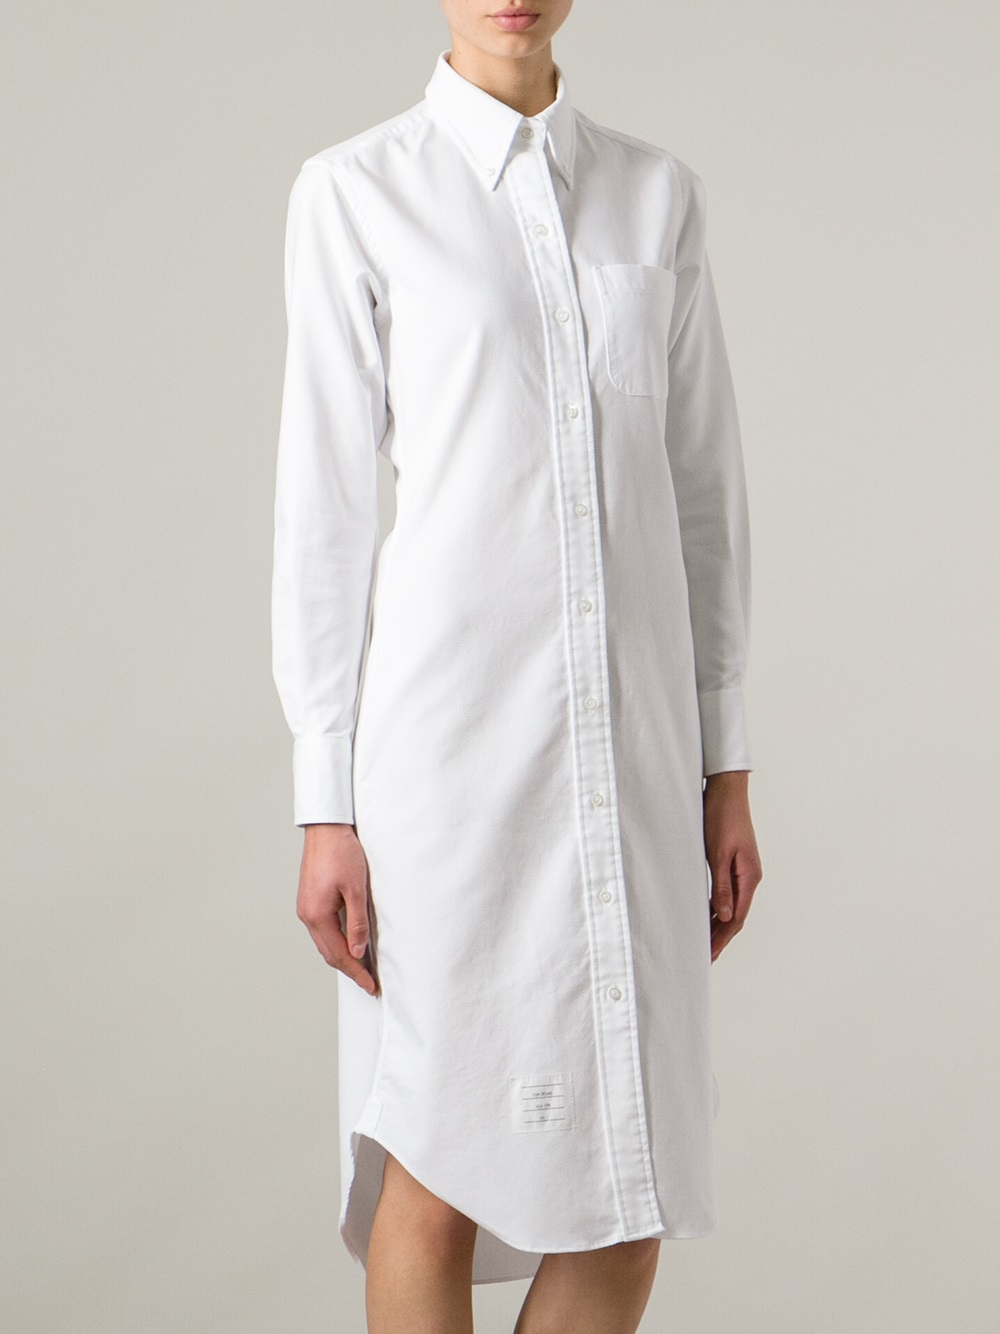 mid length shirt dress - White Thom Browne Buy Cheap Store Cheap Sale Huge Surprise yNZSDNep